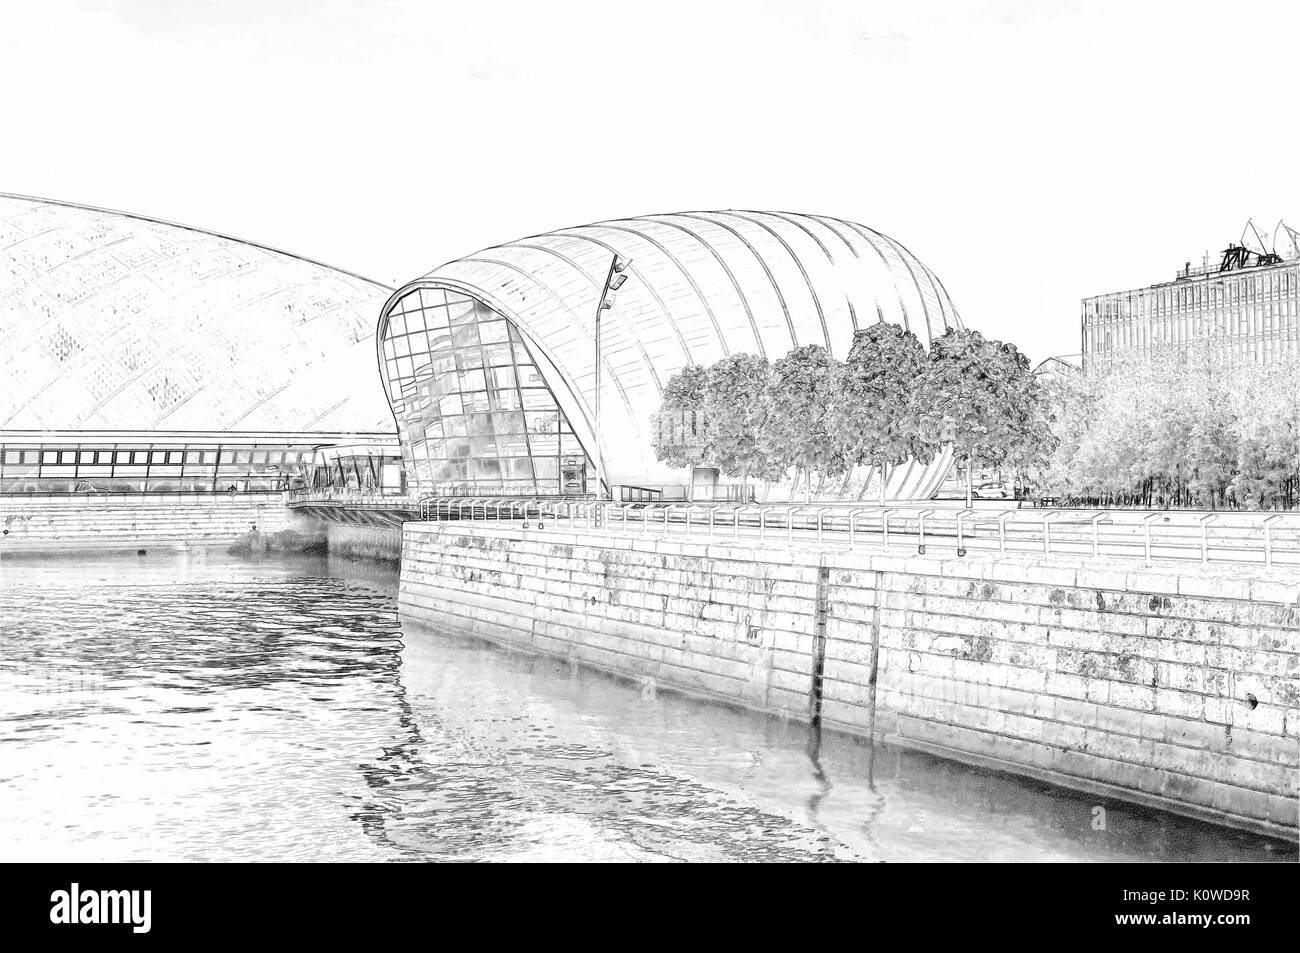 Pencil sketch of the cineworld imax at glasgow science centre on the banks of the river clyde in glasgow scotland